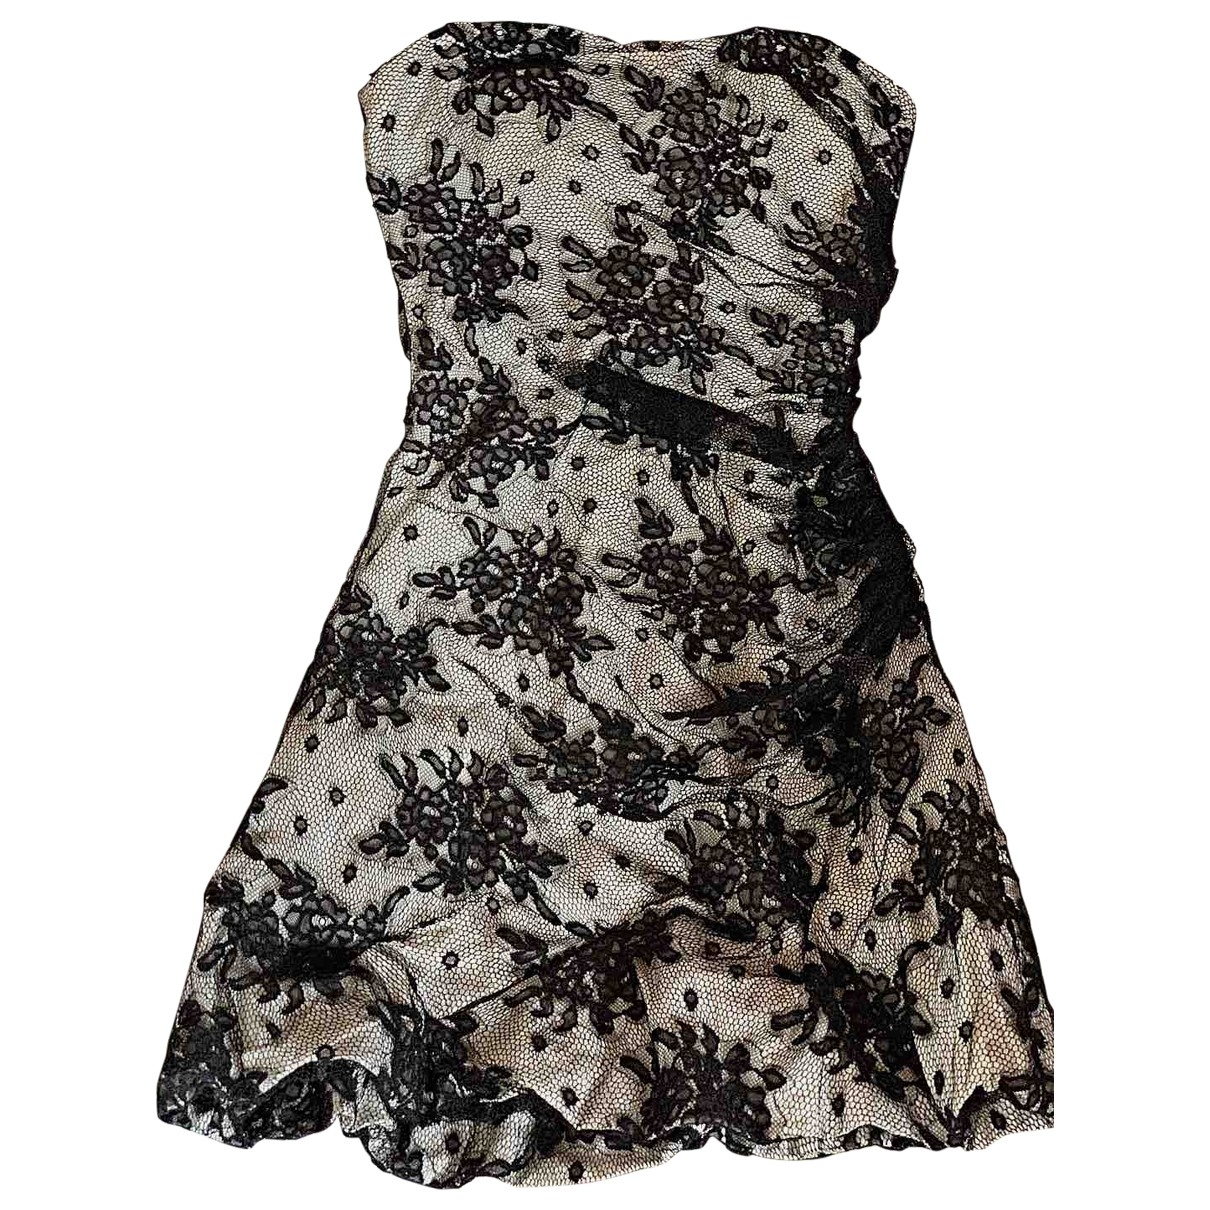 D&g \N Black Lace dress for Women 40 IT